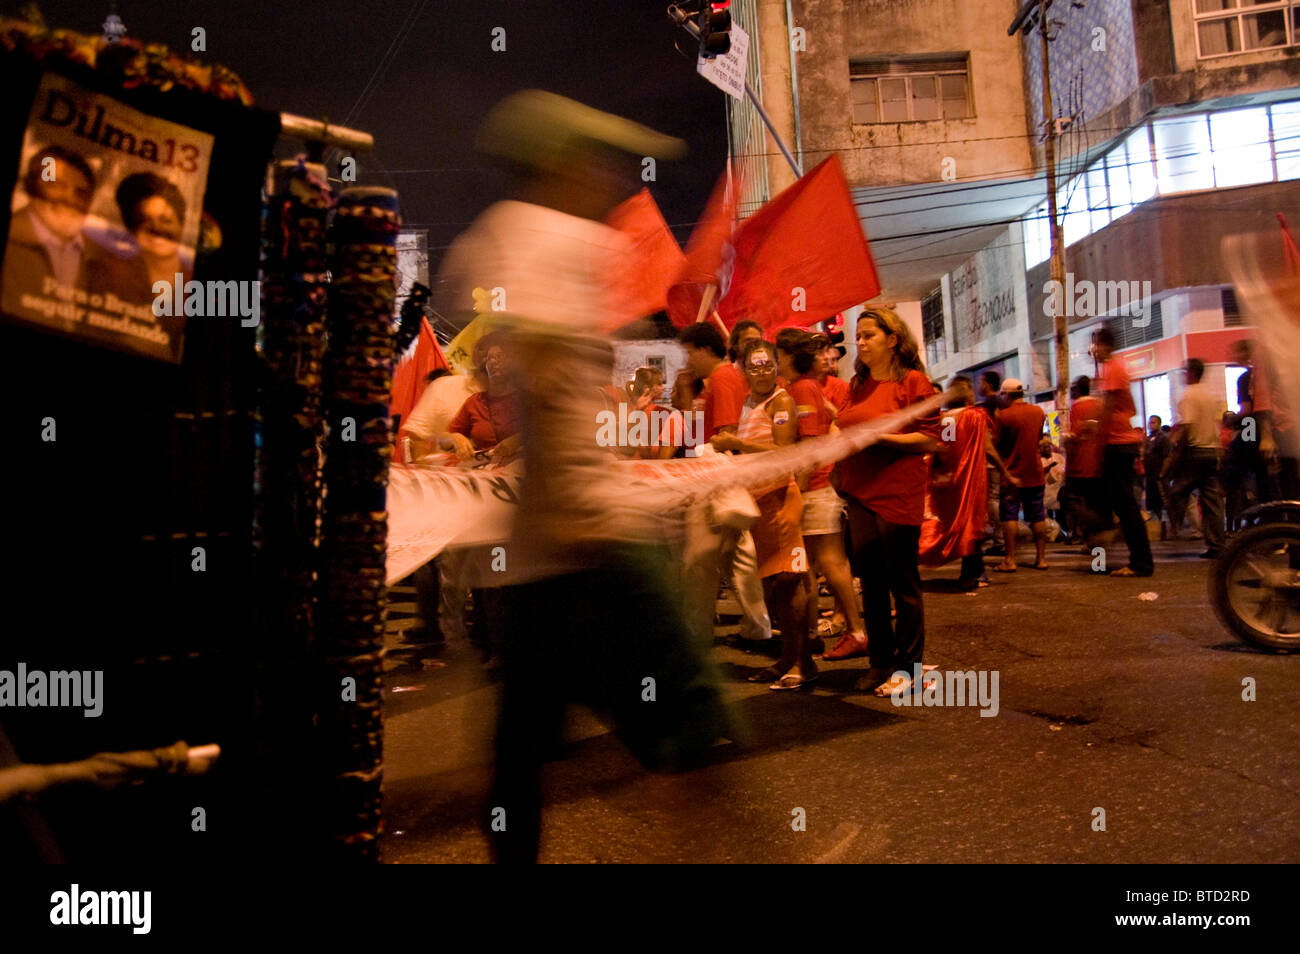 March and campaign in Recife Brazil  prior to presidential election of Dilma Vana Rousseff 22.10.10 - Stock Image